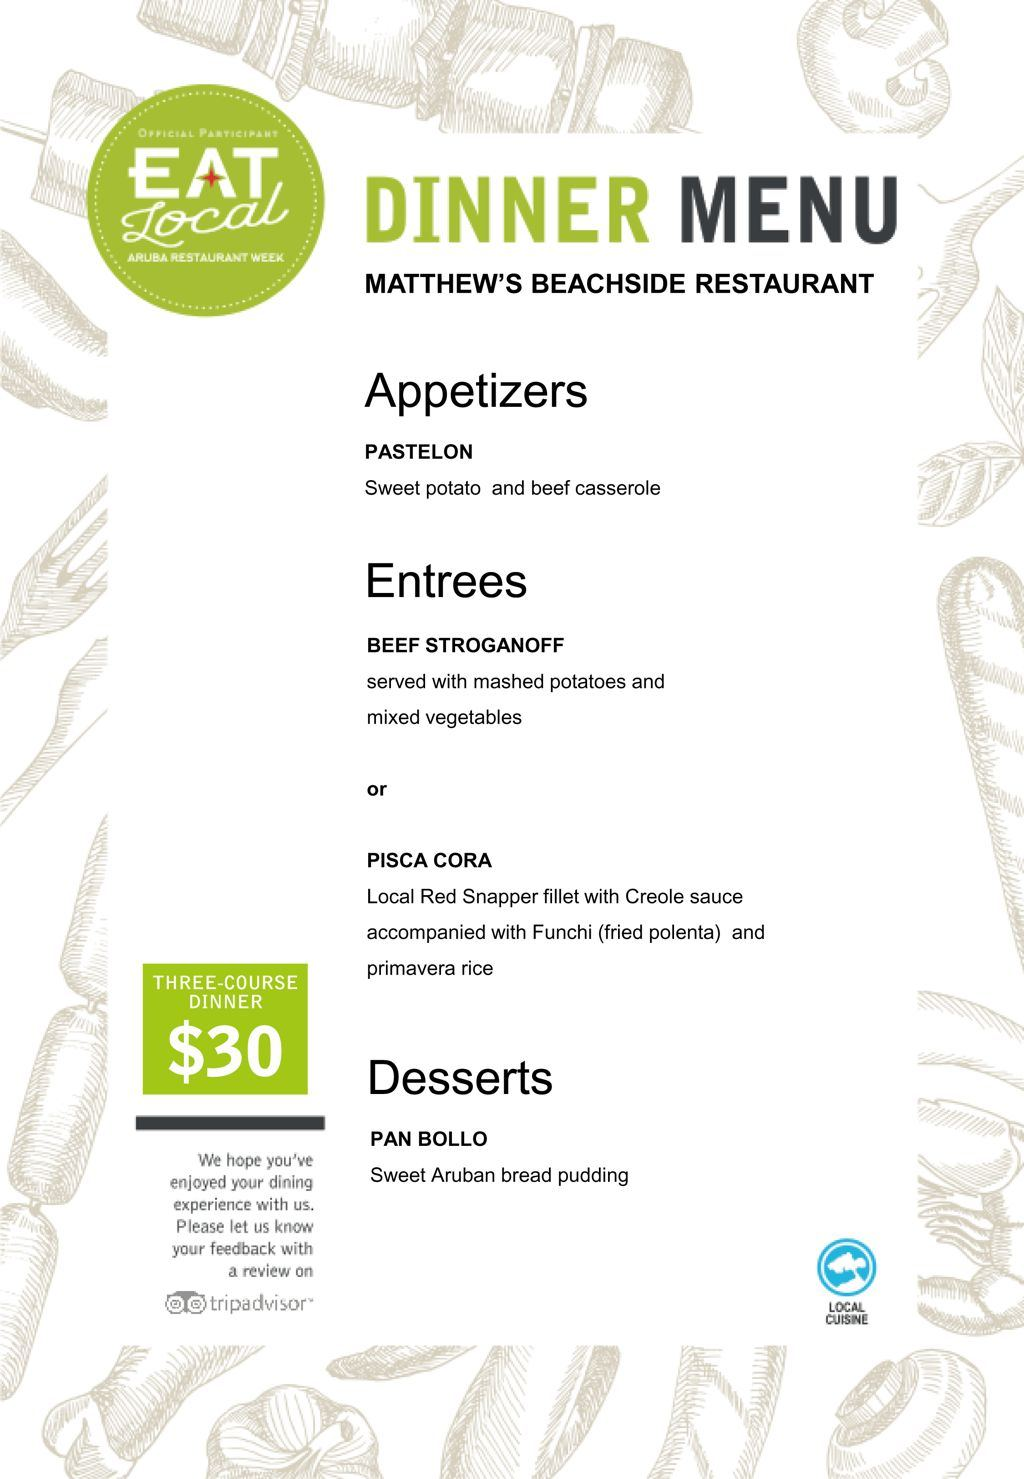 Matthew's Beachside Restaurant - Eat Local 2017